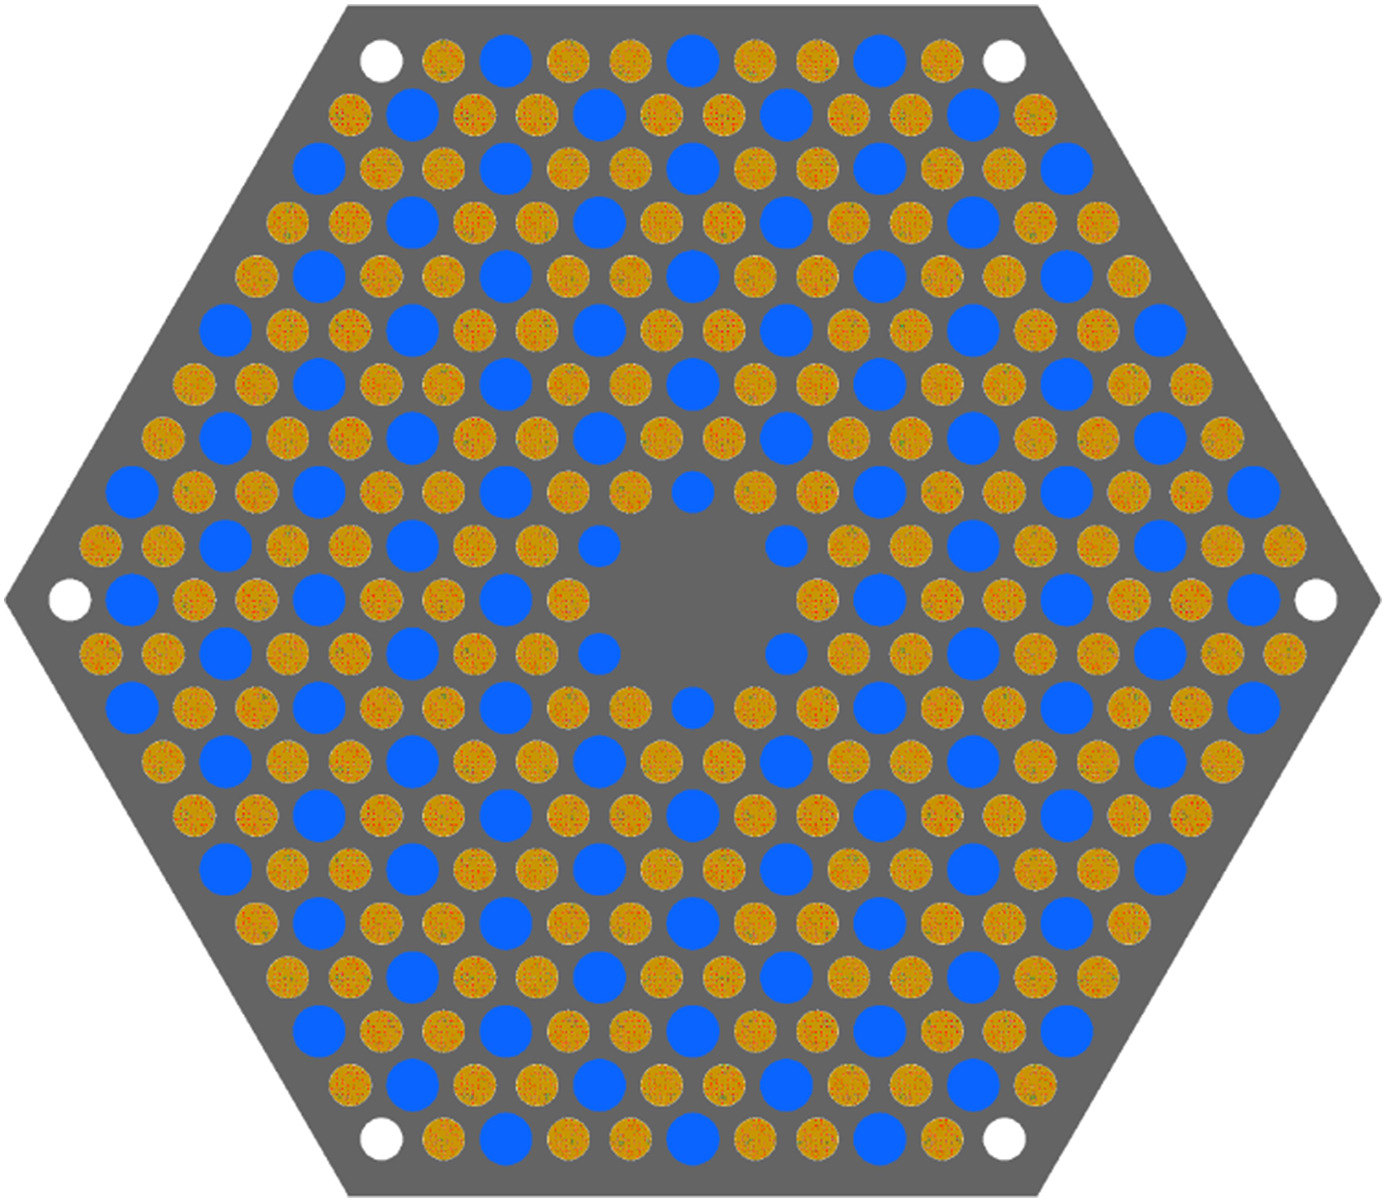 Image of a reactor prismatic assembly geometry.